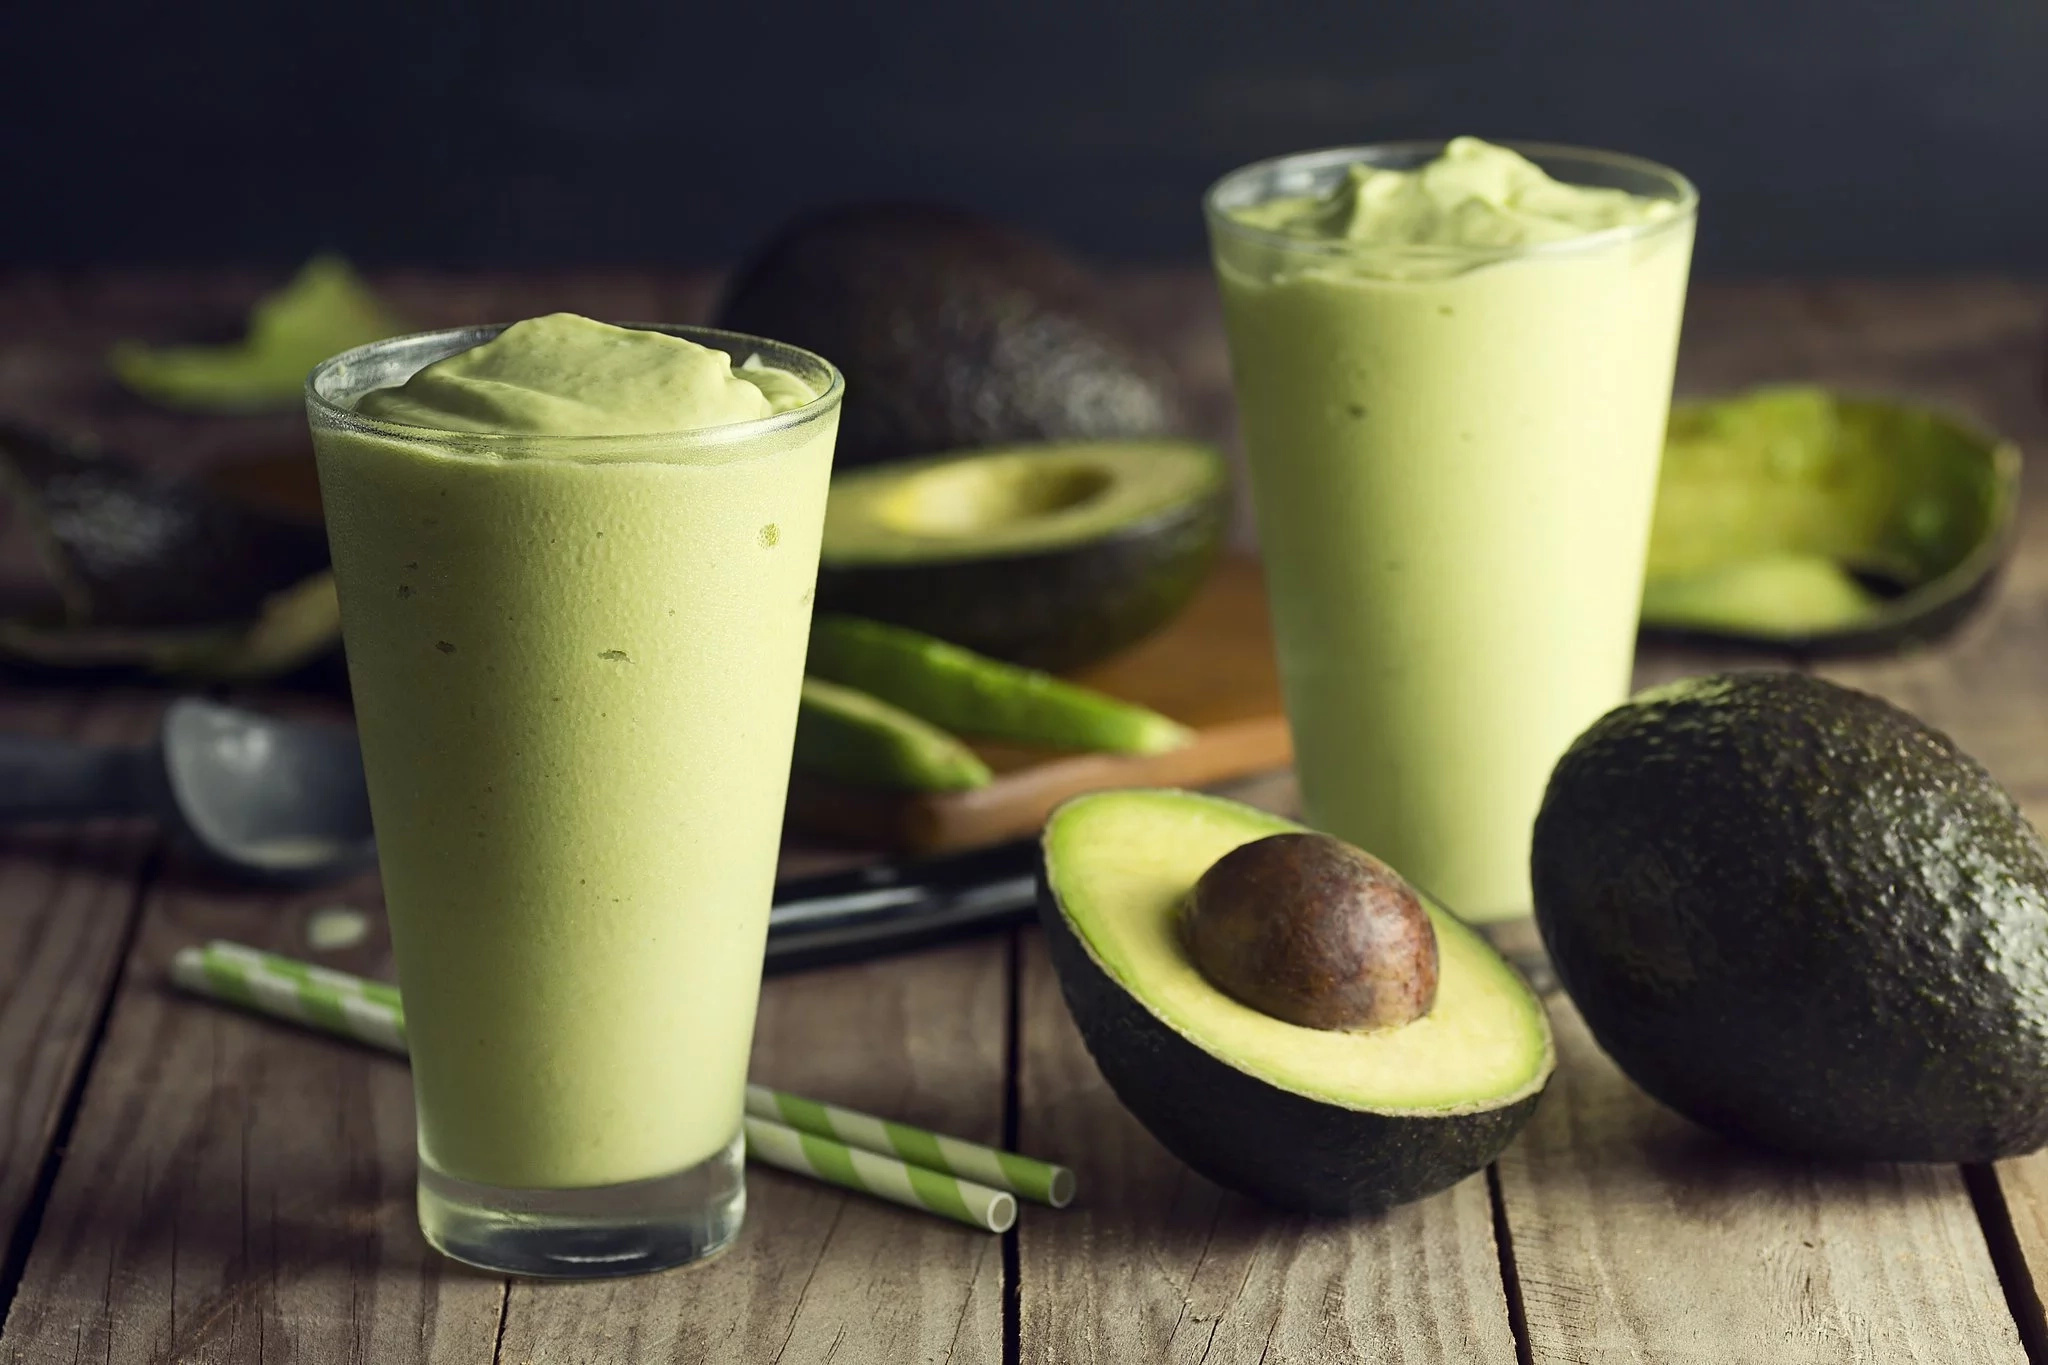 This is how to eat avocado in seven different ways